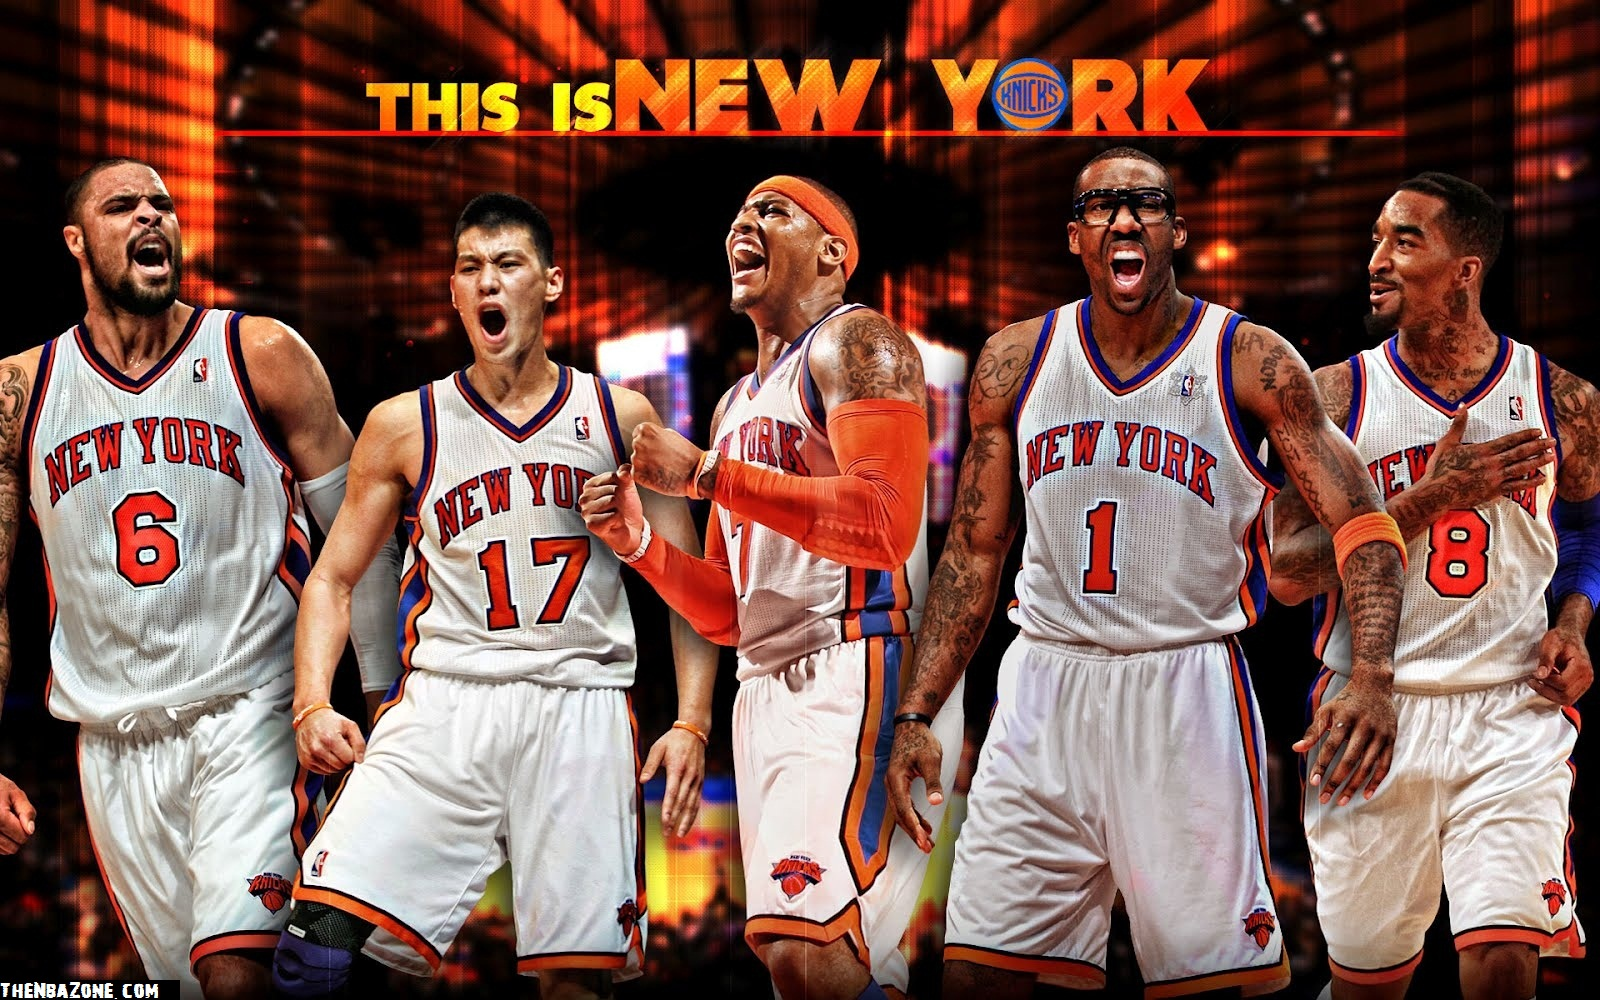 New York Knicks NBA Playoffs 2012 HD Wallpaper